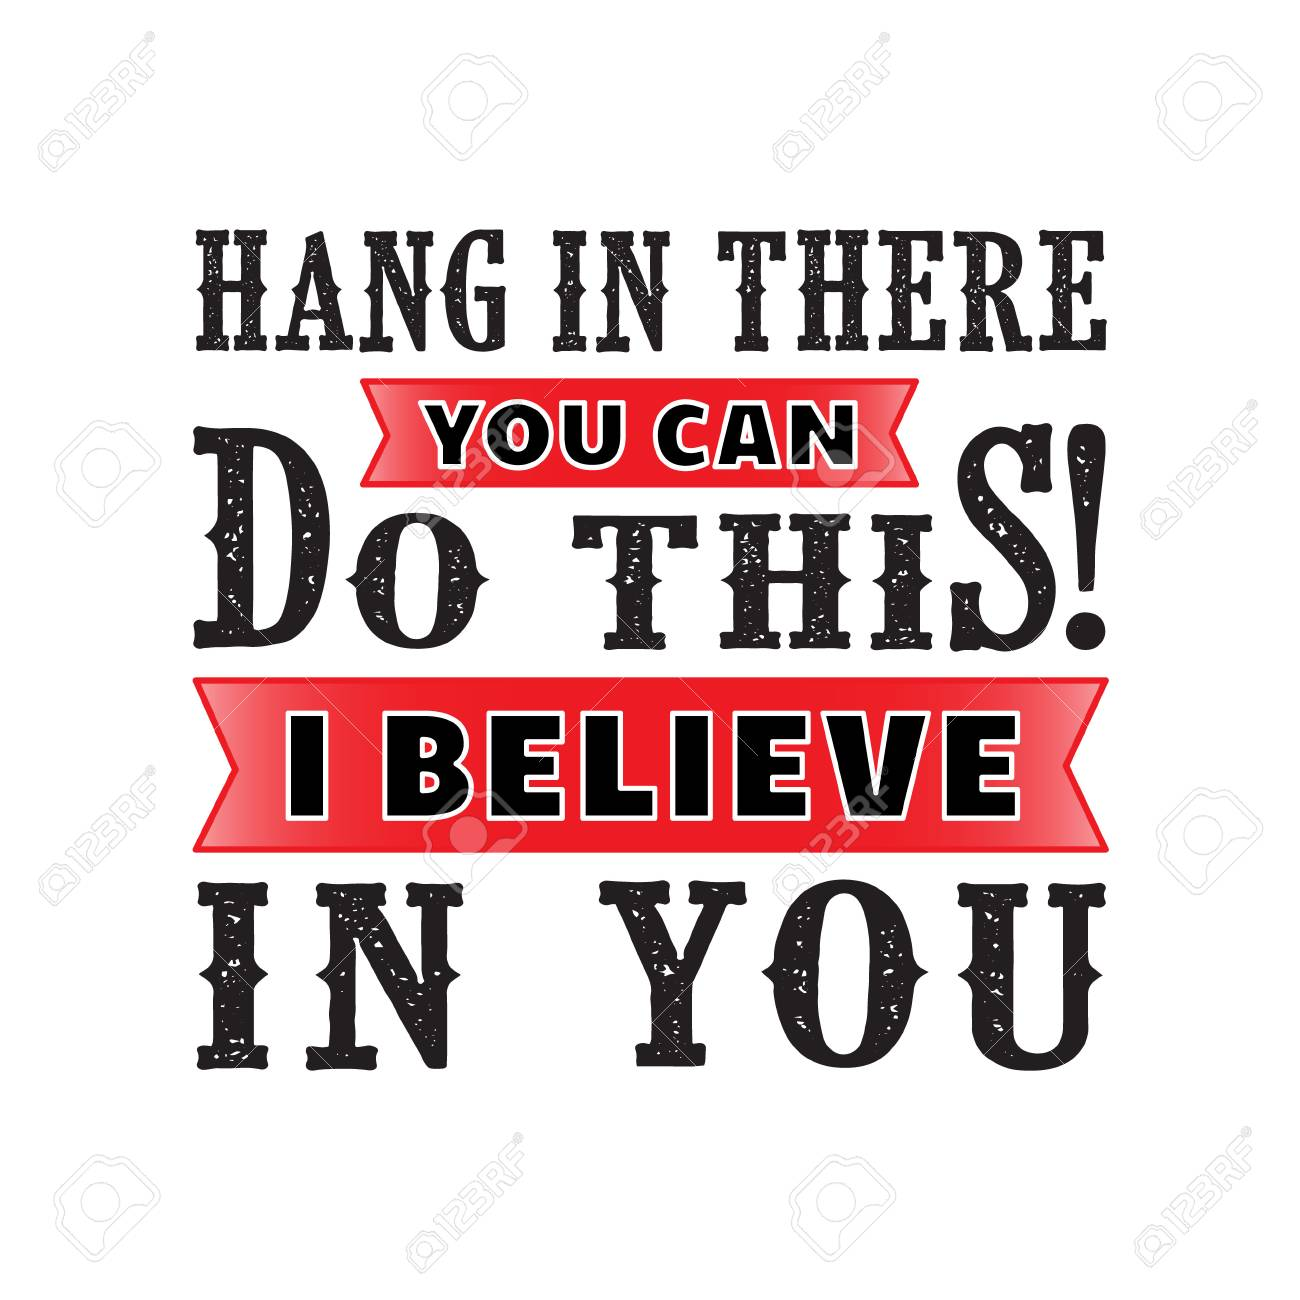 hang in There, Motivational Quote for better life.